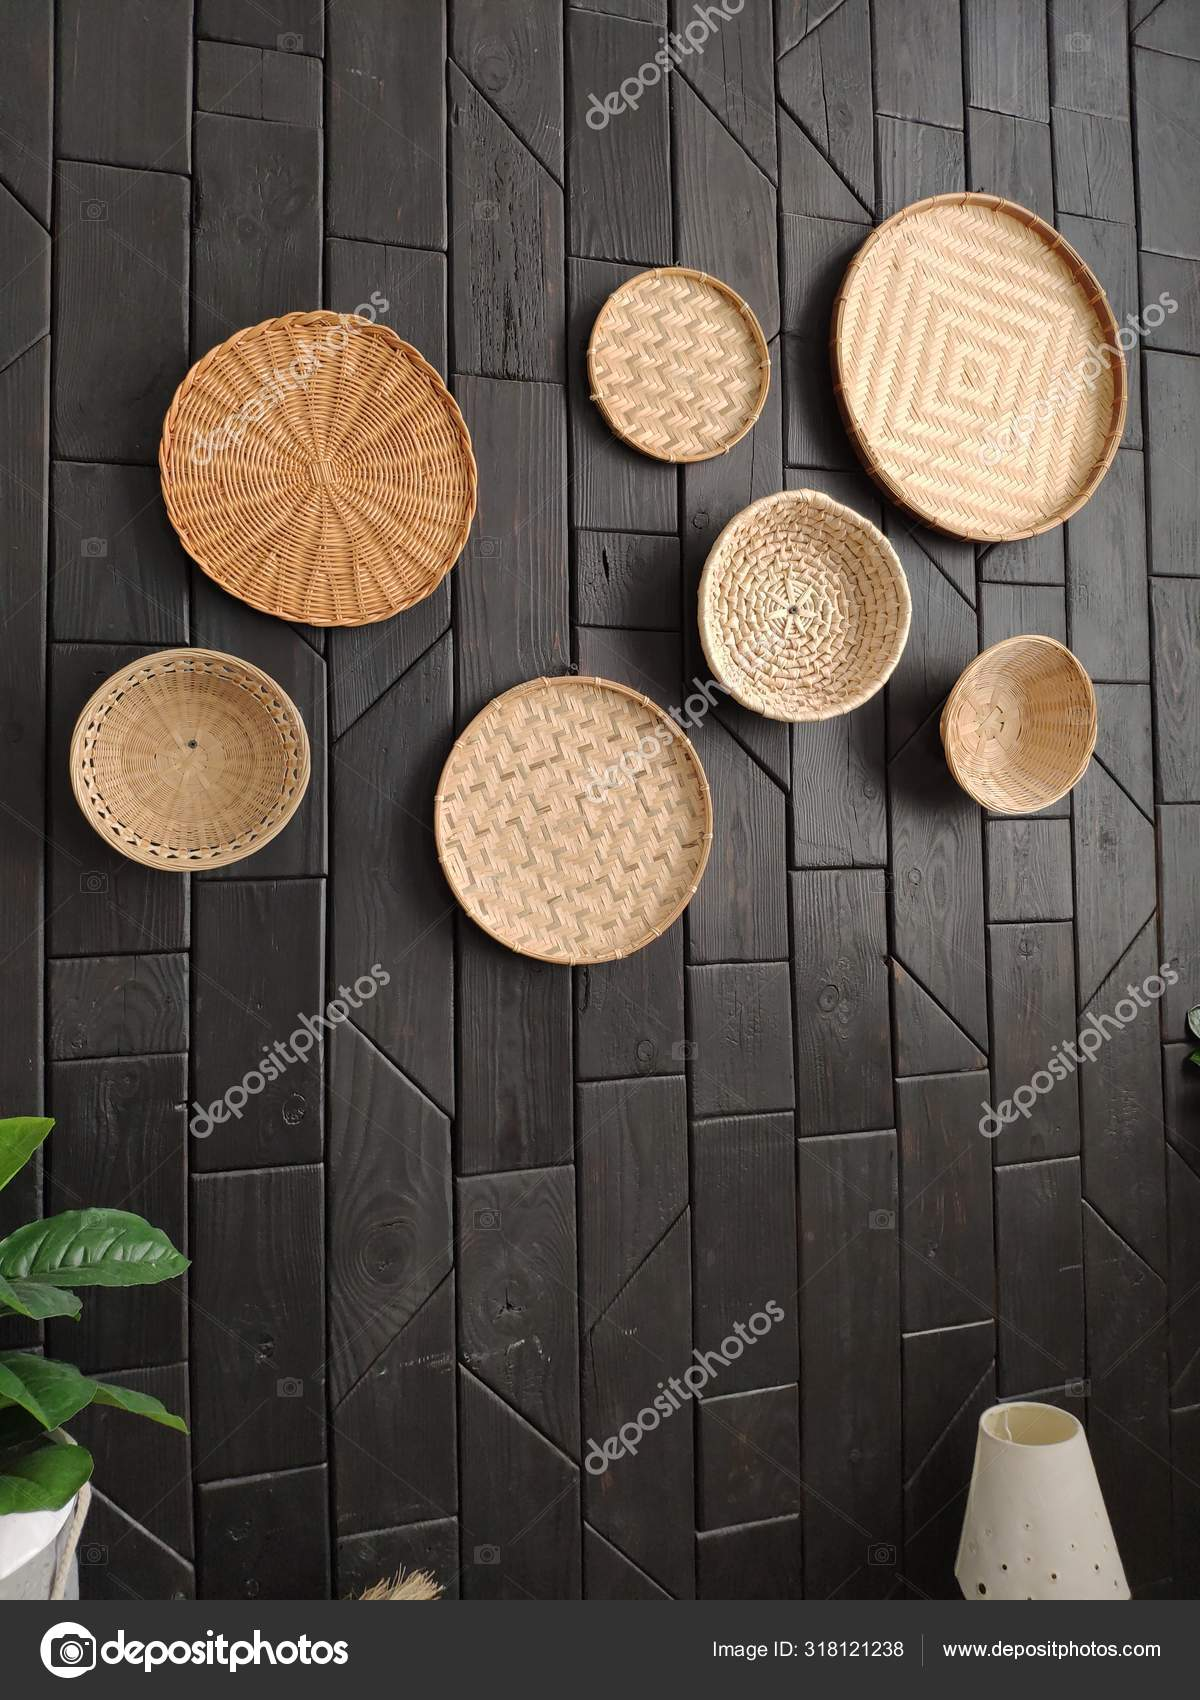 Dark Wall Decor Wicker Plates Baskets Wall Wicker Plates Wall Stock Photo C Volonterats Gmail Com 318121238